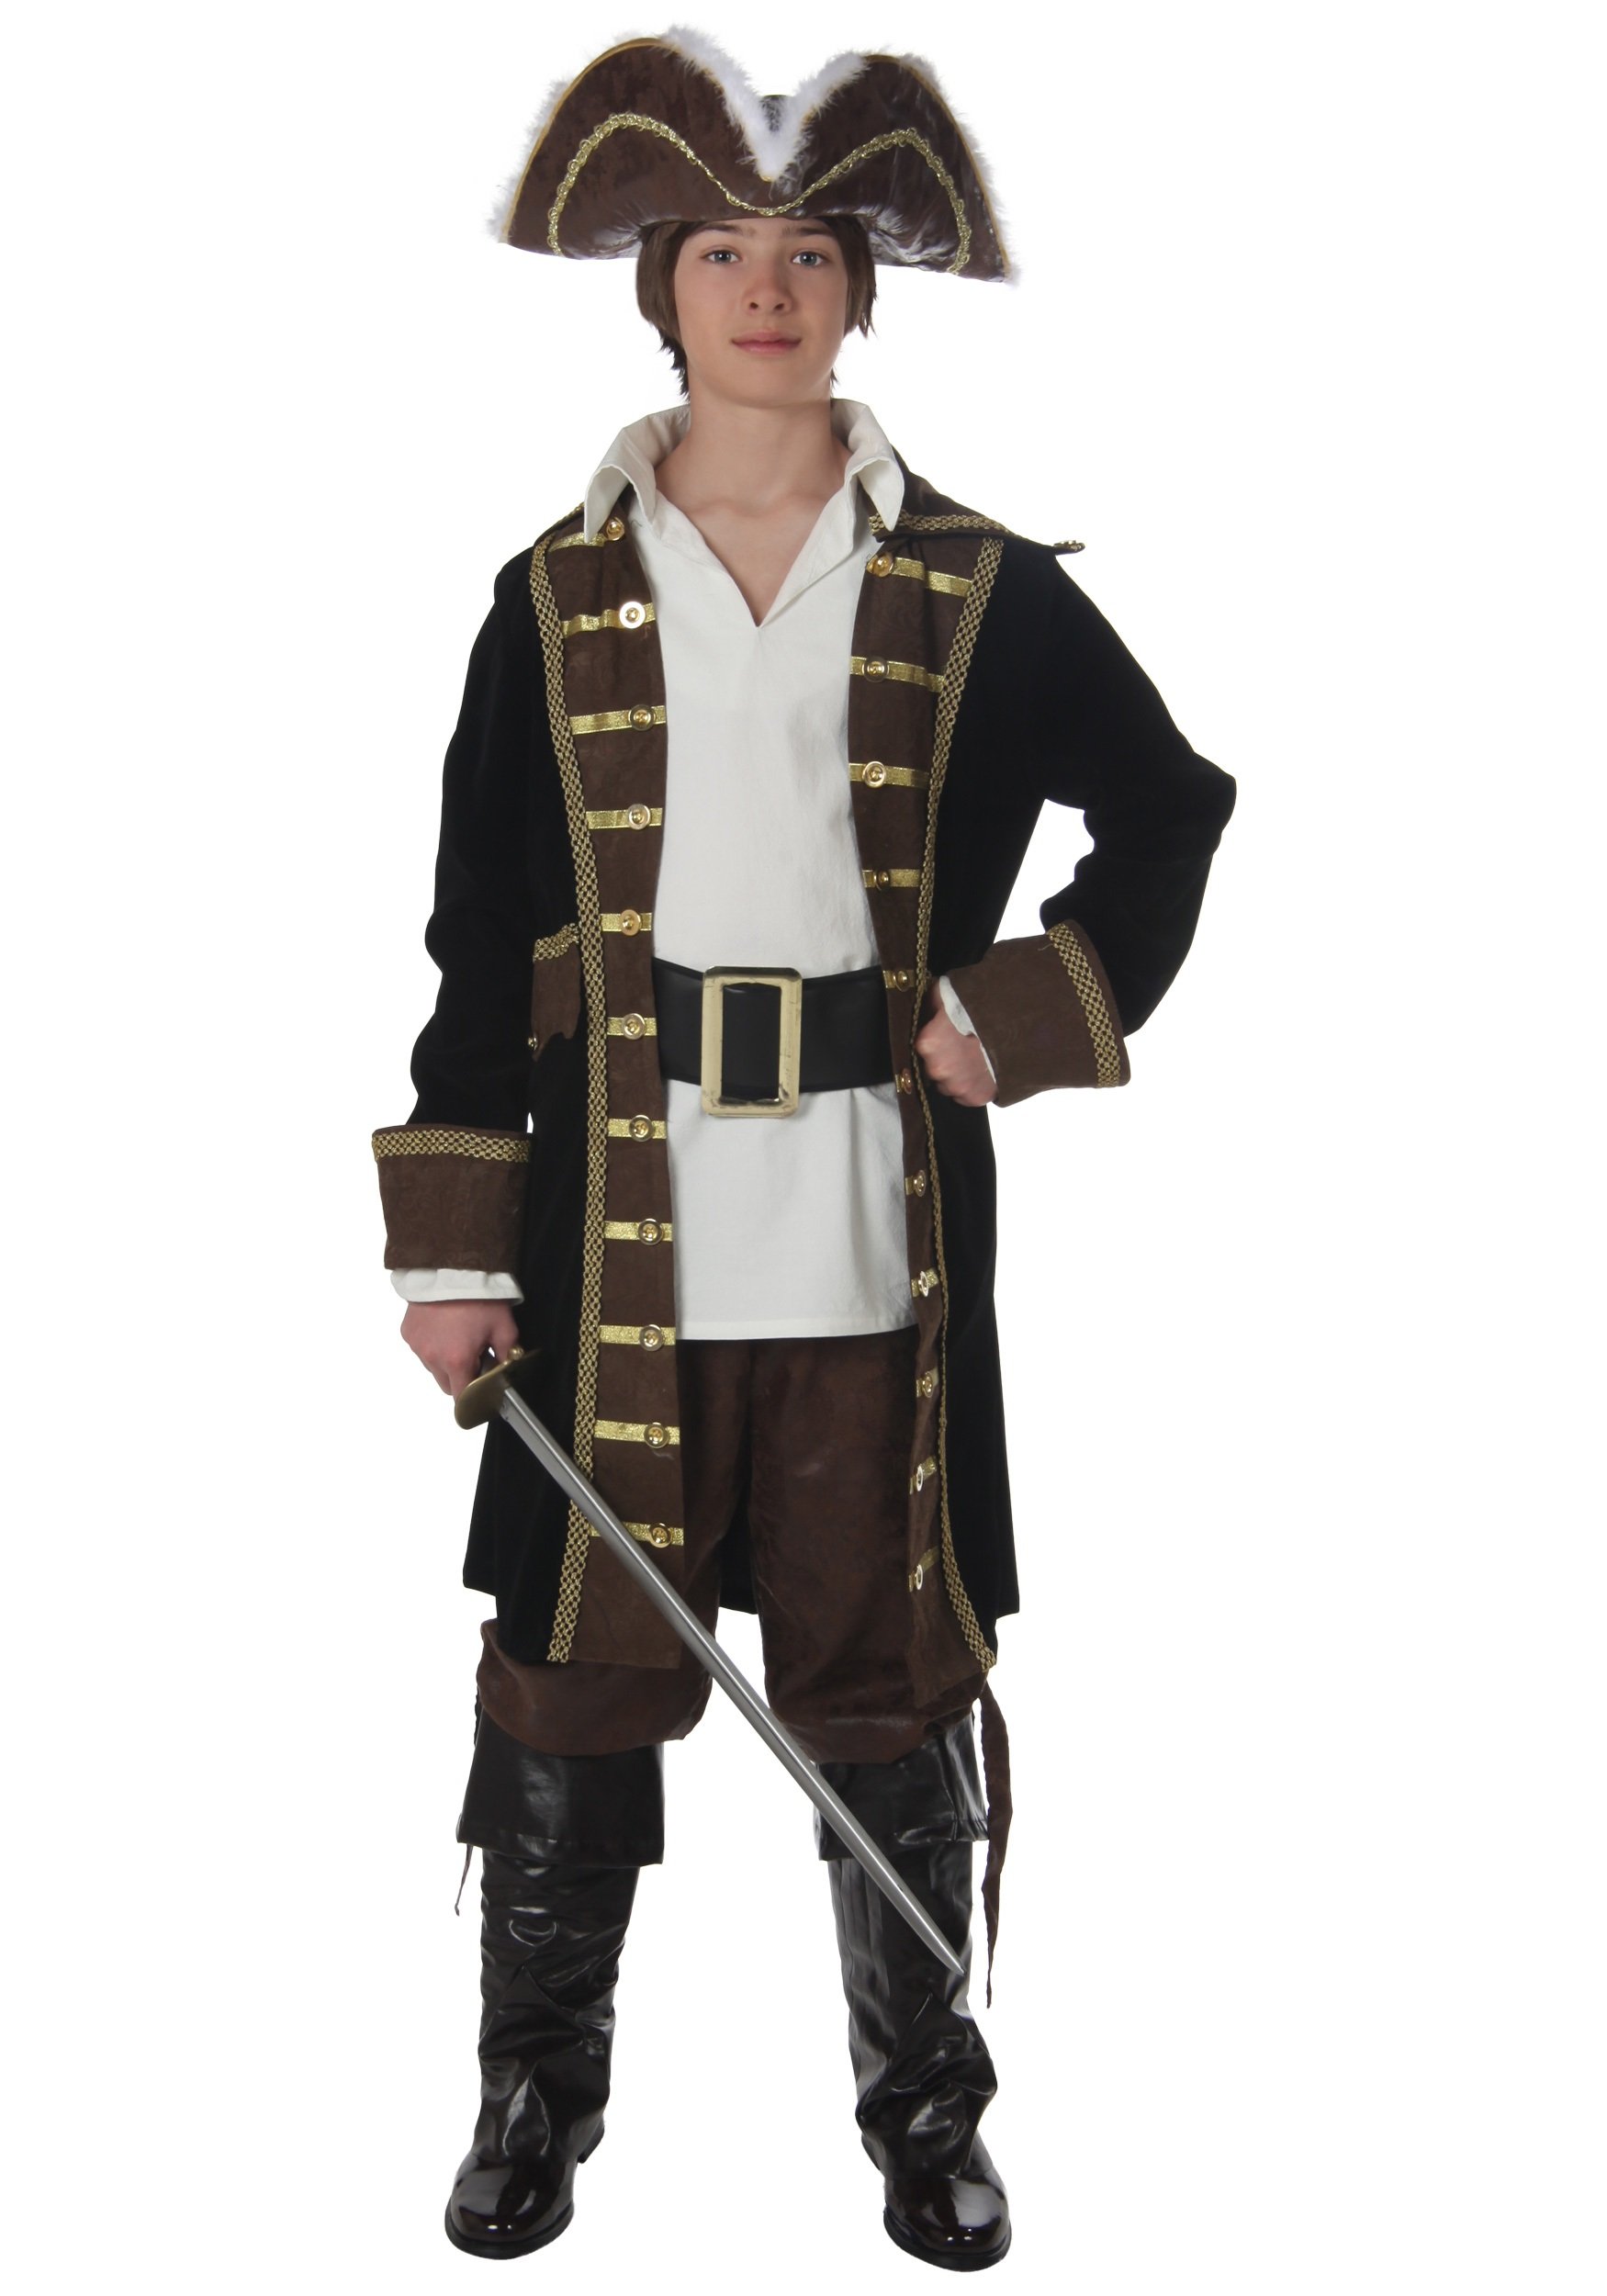 Realistic Pirate Costume for Boys